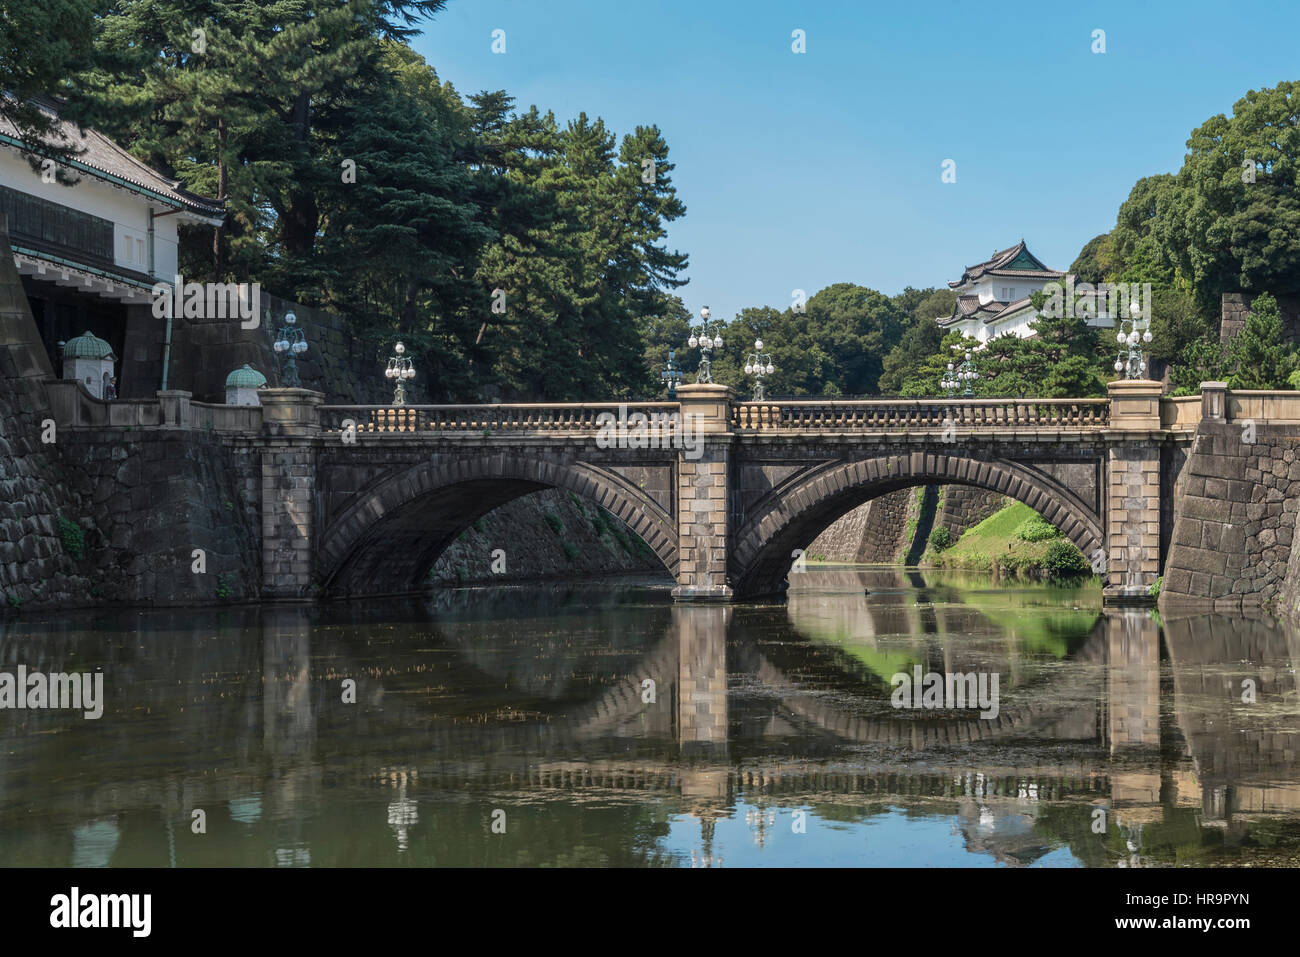 The Tokyo Imperial Palace is the primary residence of the Emperor of Japan. It is a large park-like area located - Stock Image